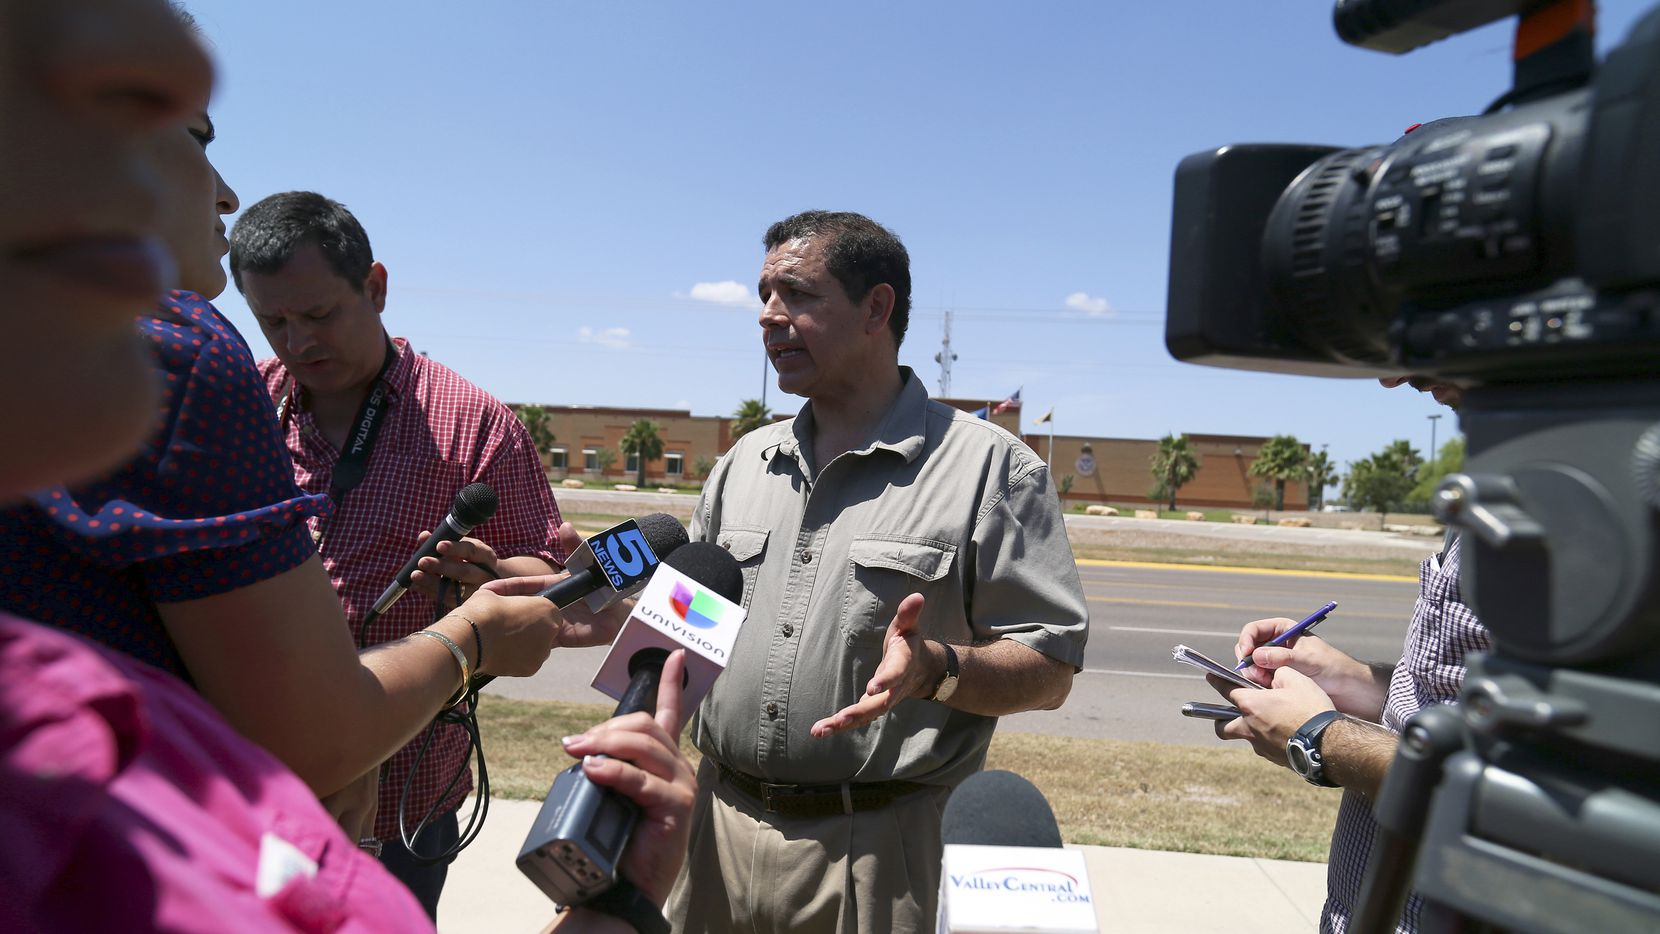 Rep. Henry Cuellar (D-Texas), co-sponsor of a bill intended to make it easier to send migrant children back to their home countries, outside the U.S. Customs and Border Patrol facility in Hidalgo, Texas, June 14, 2014. The bill, also sponsored by Sen. John Cornyn (R-Texas), would allow children from Central American countries to opt to be voluntarily sent home. (Jennifer Whitney/The New York Times)